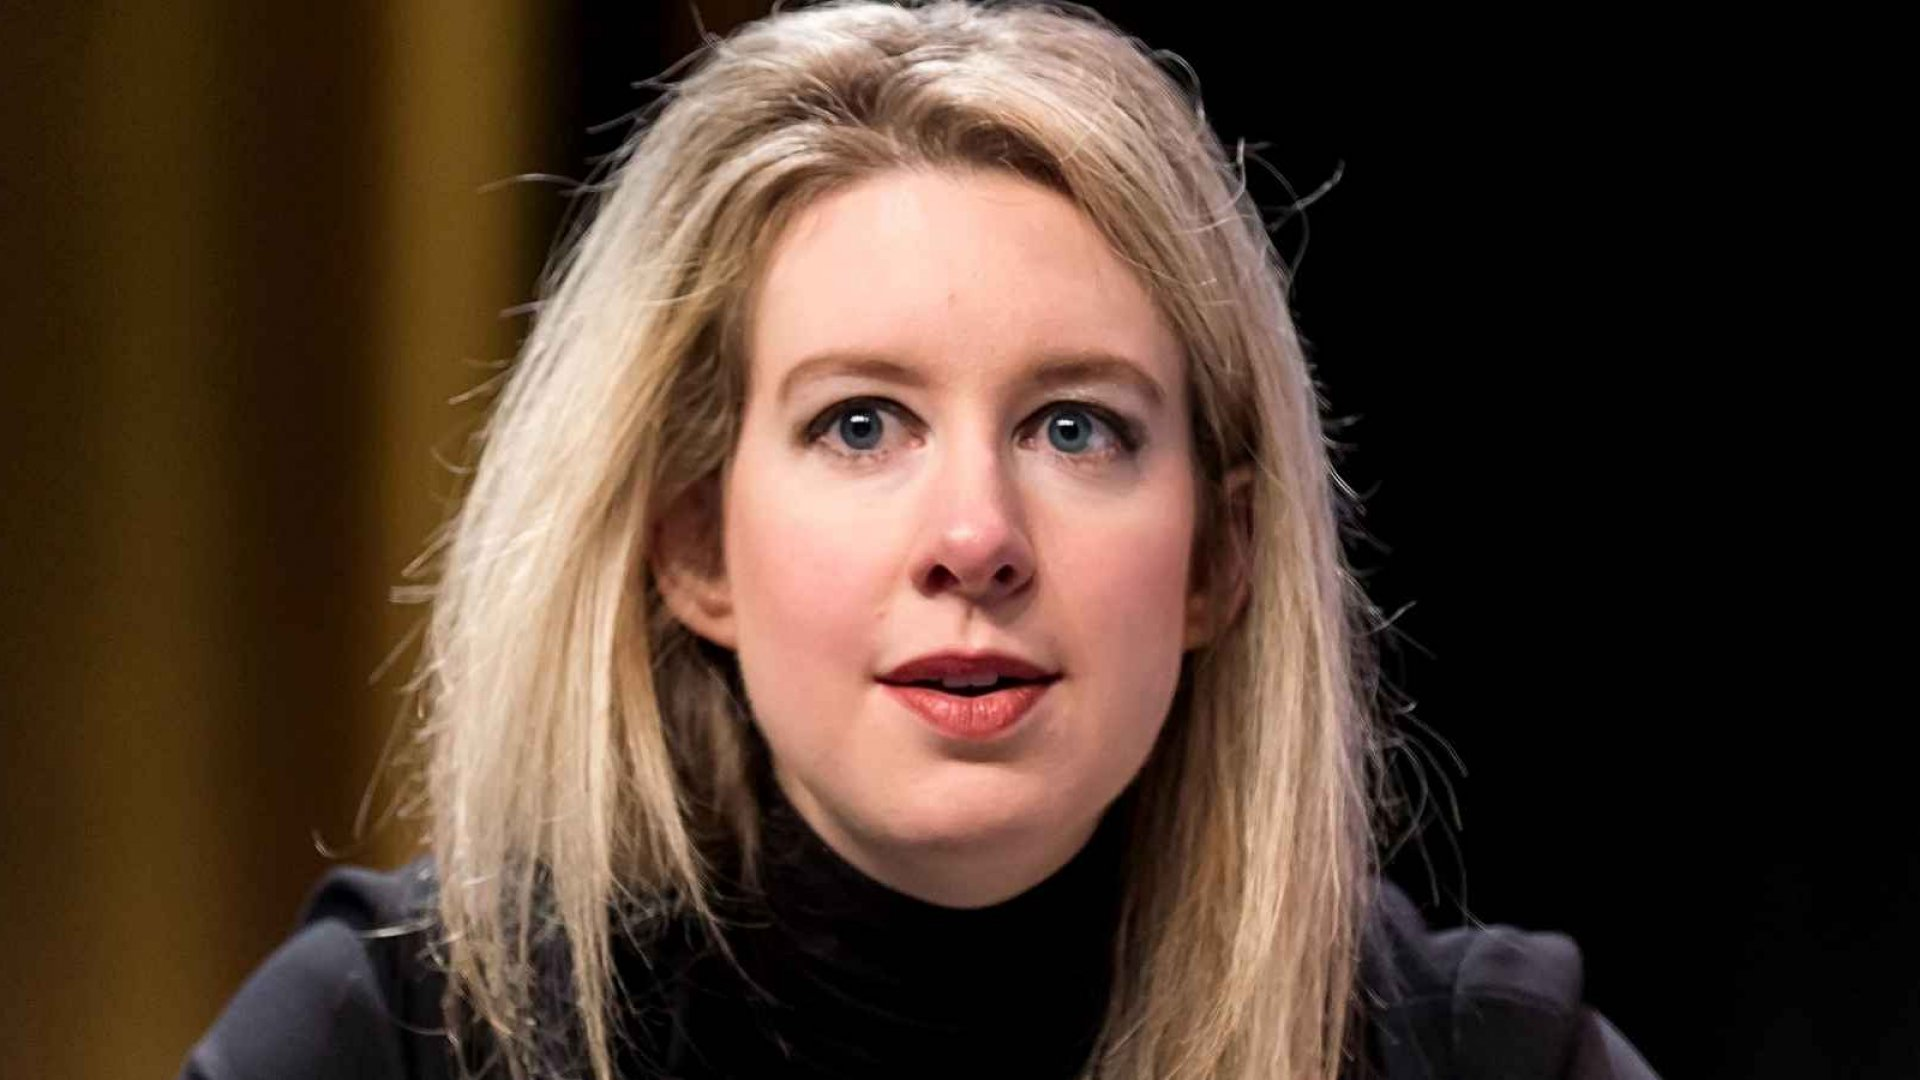 Theranos CEO Elizabeth Holmes Banned From Lab Work for 2 Years